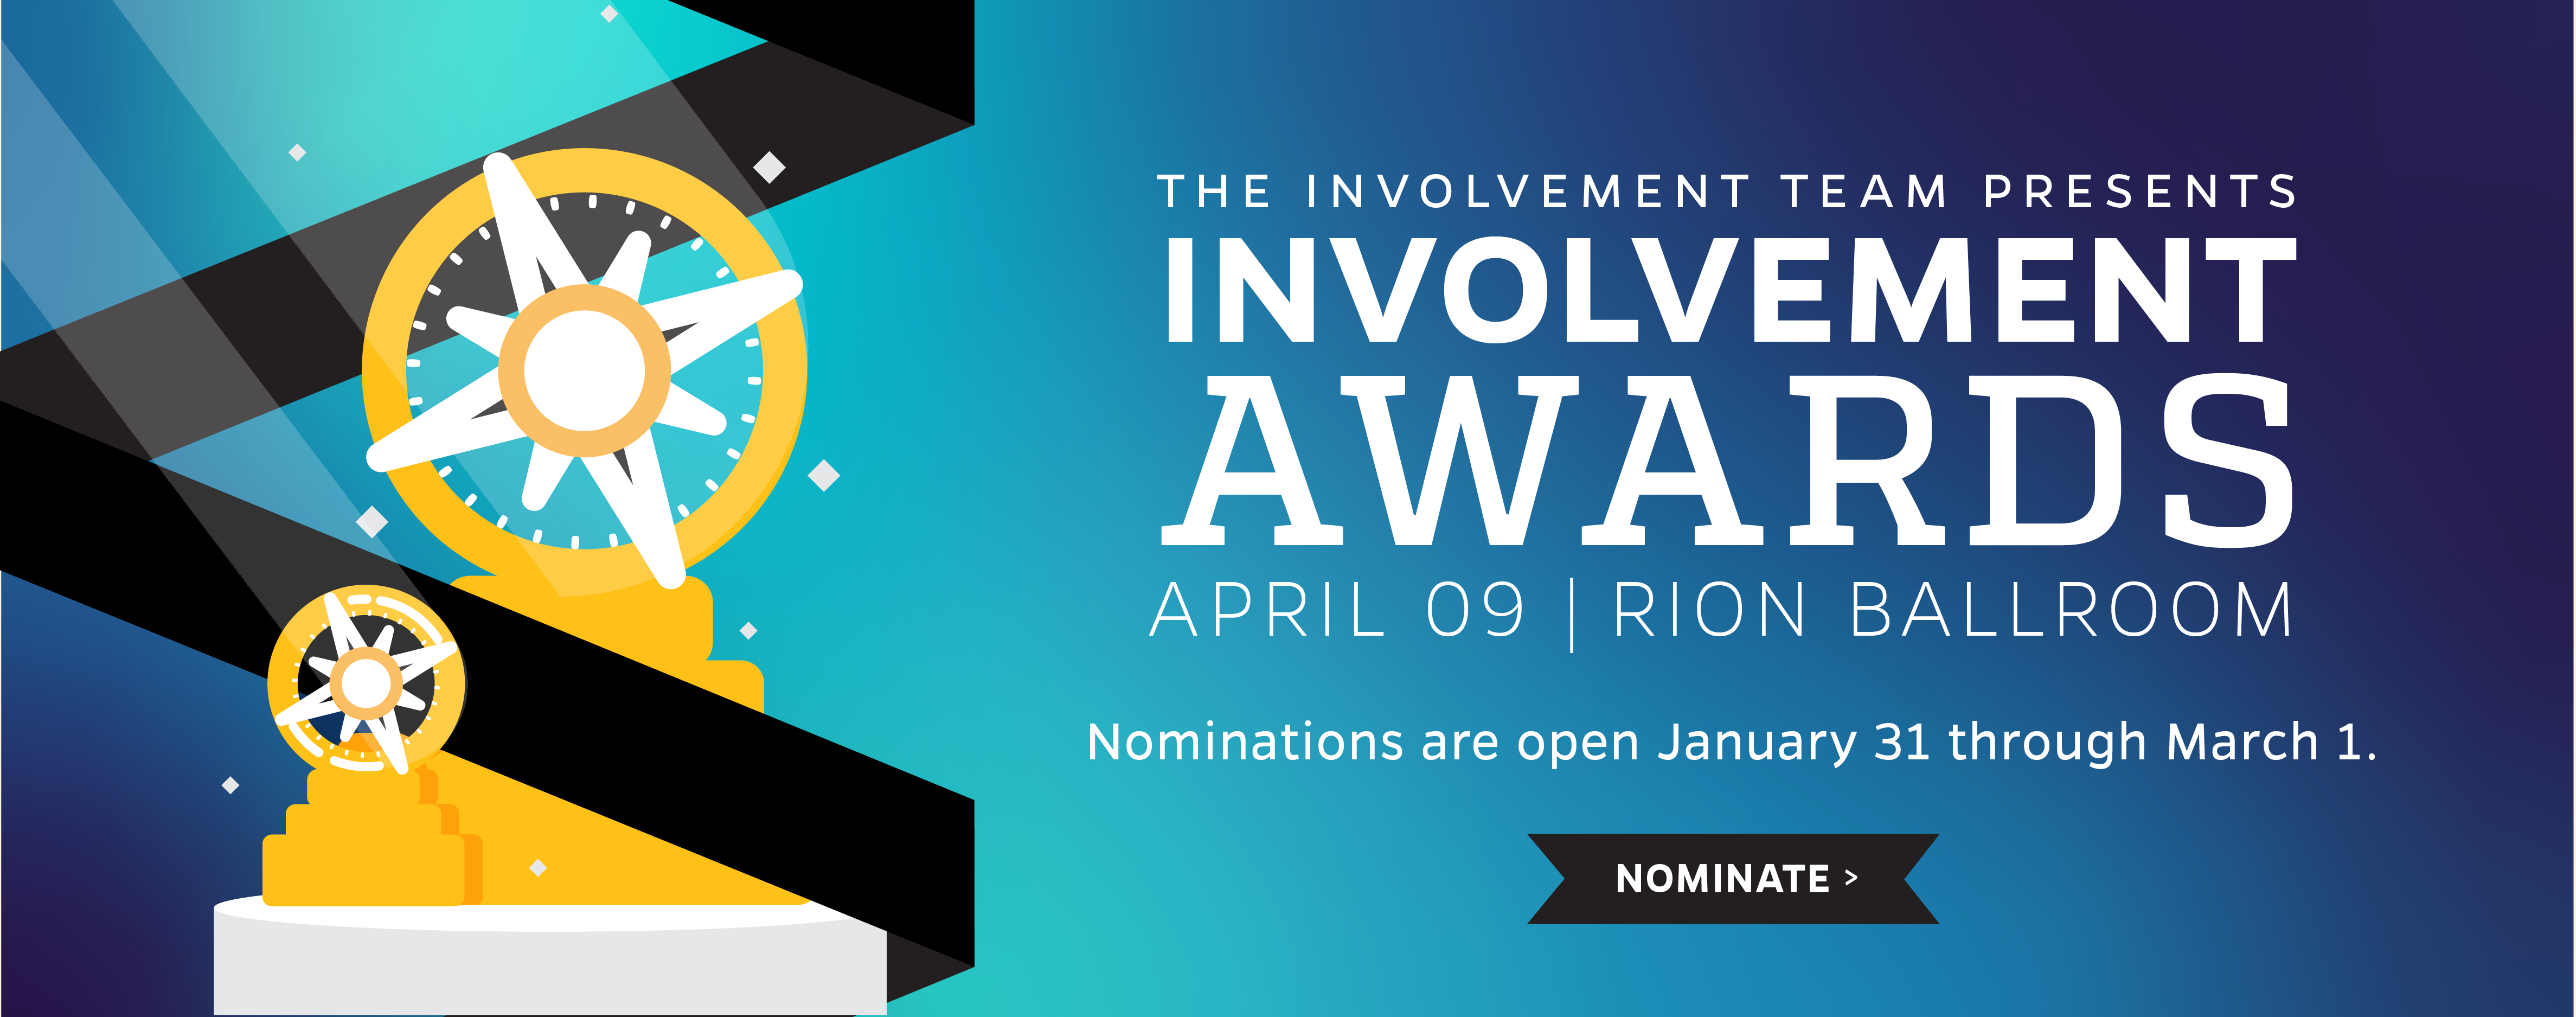 Involvement Award Graphic April 9 Event Nominations are open until March 1